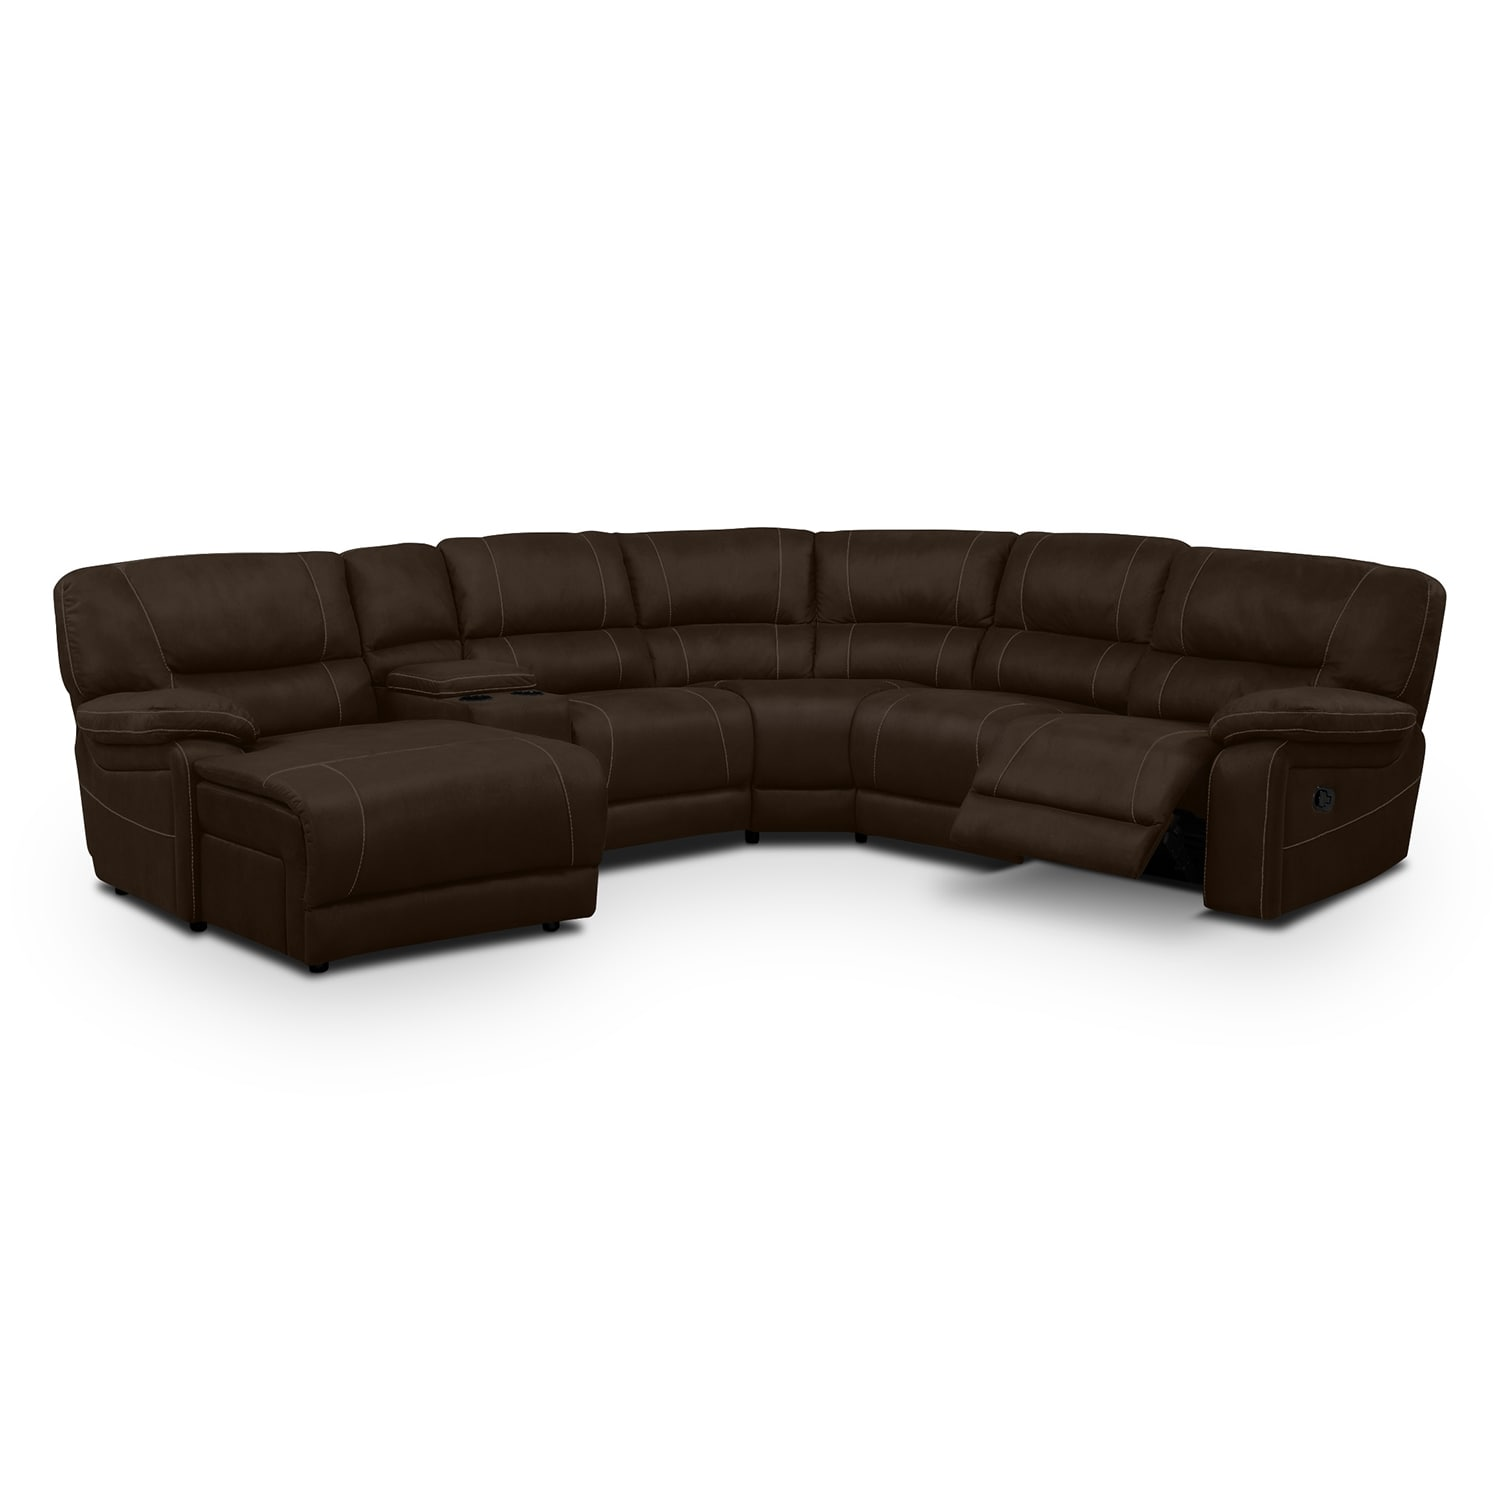 [Wyoming Saddle 5 Pc. Reclining Sectional (Reverse)]